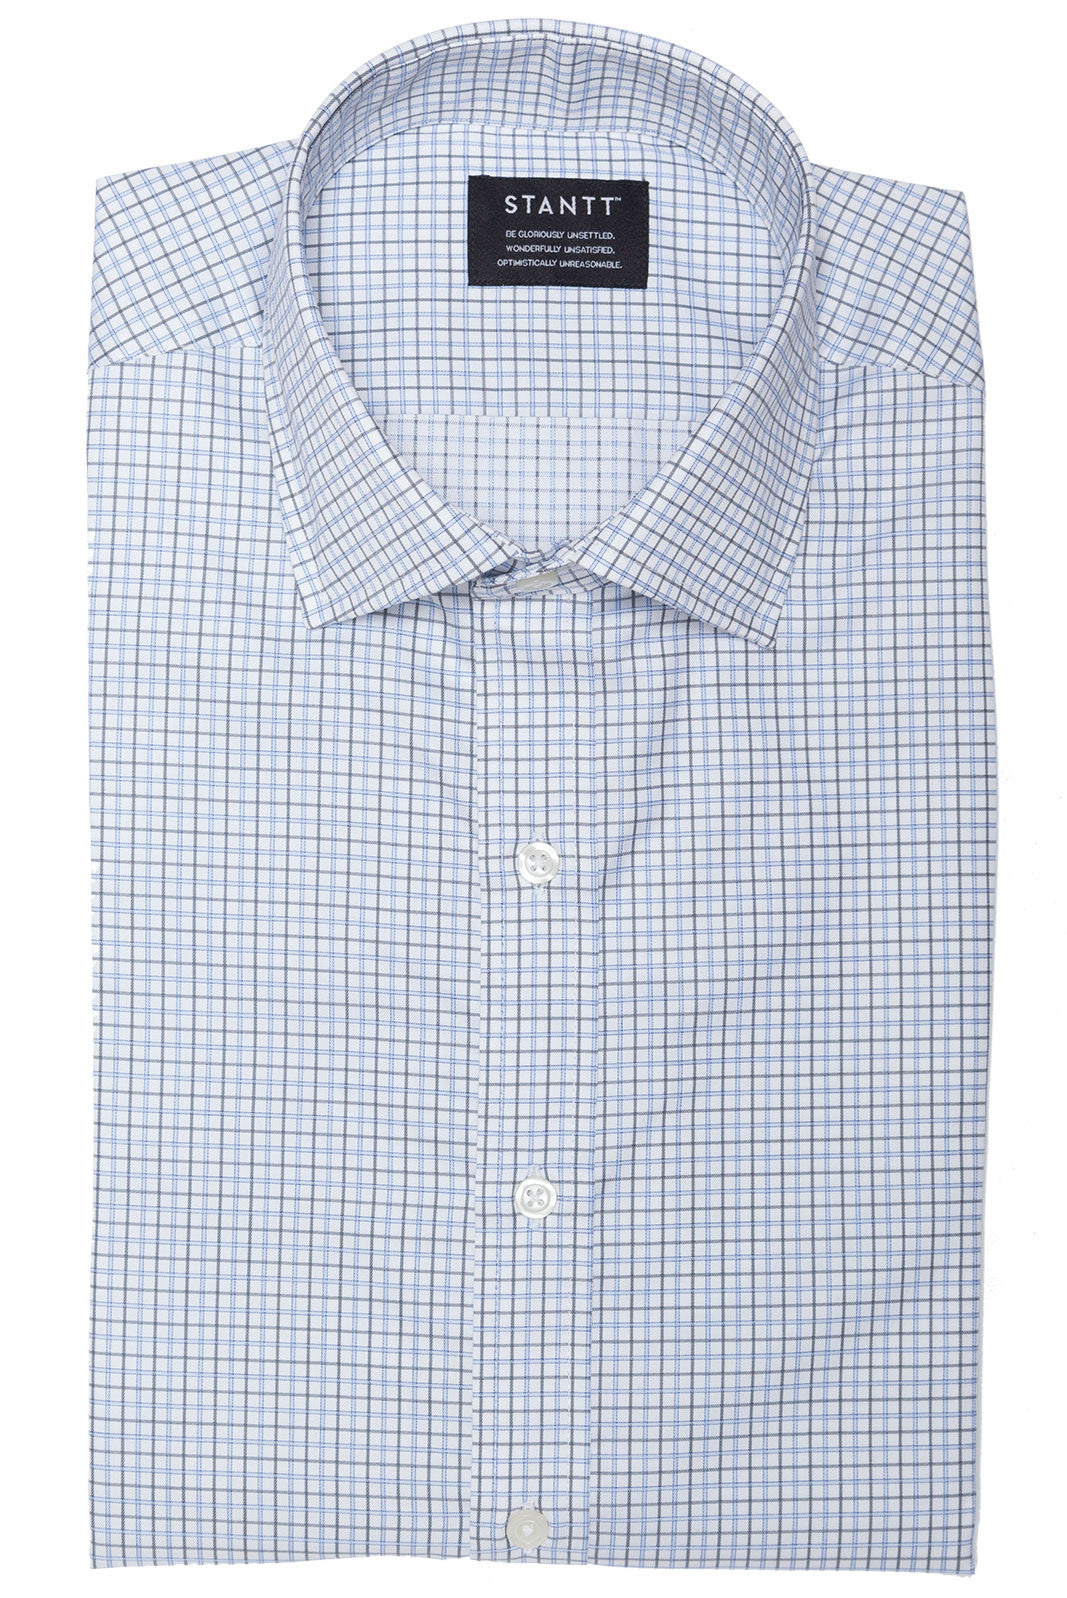 Grey and Light Blue Tattersall: Semi-Spread Collar, Barrel Cuff